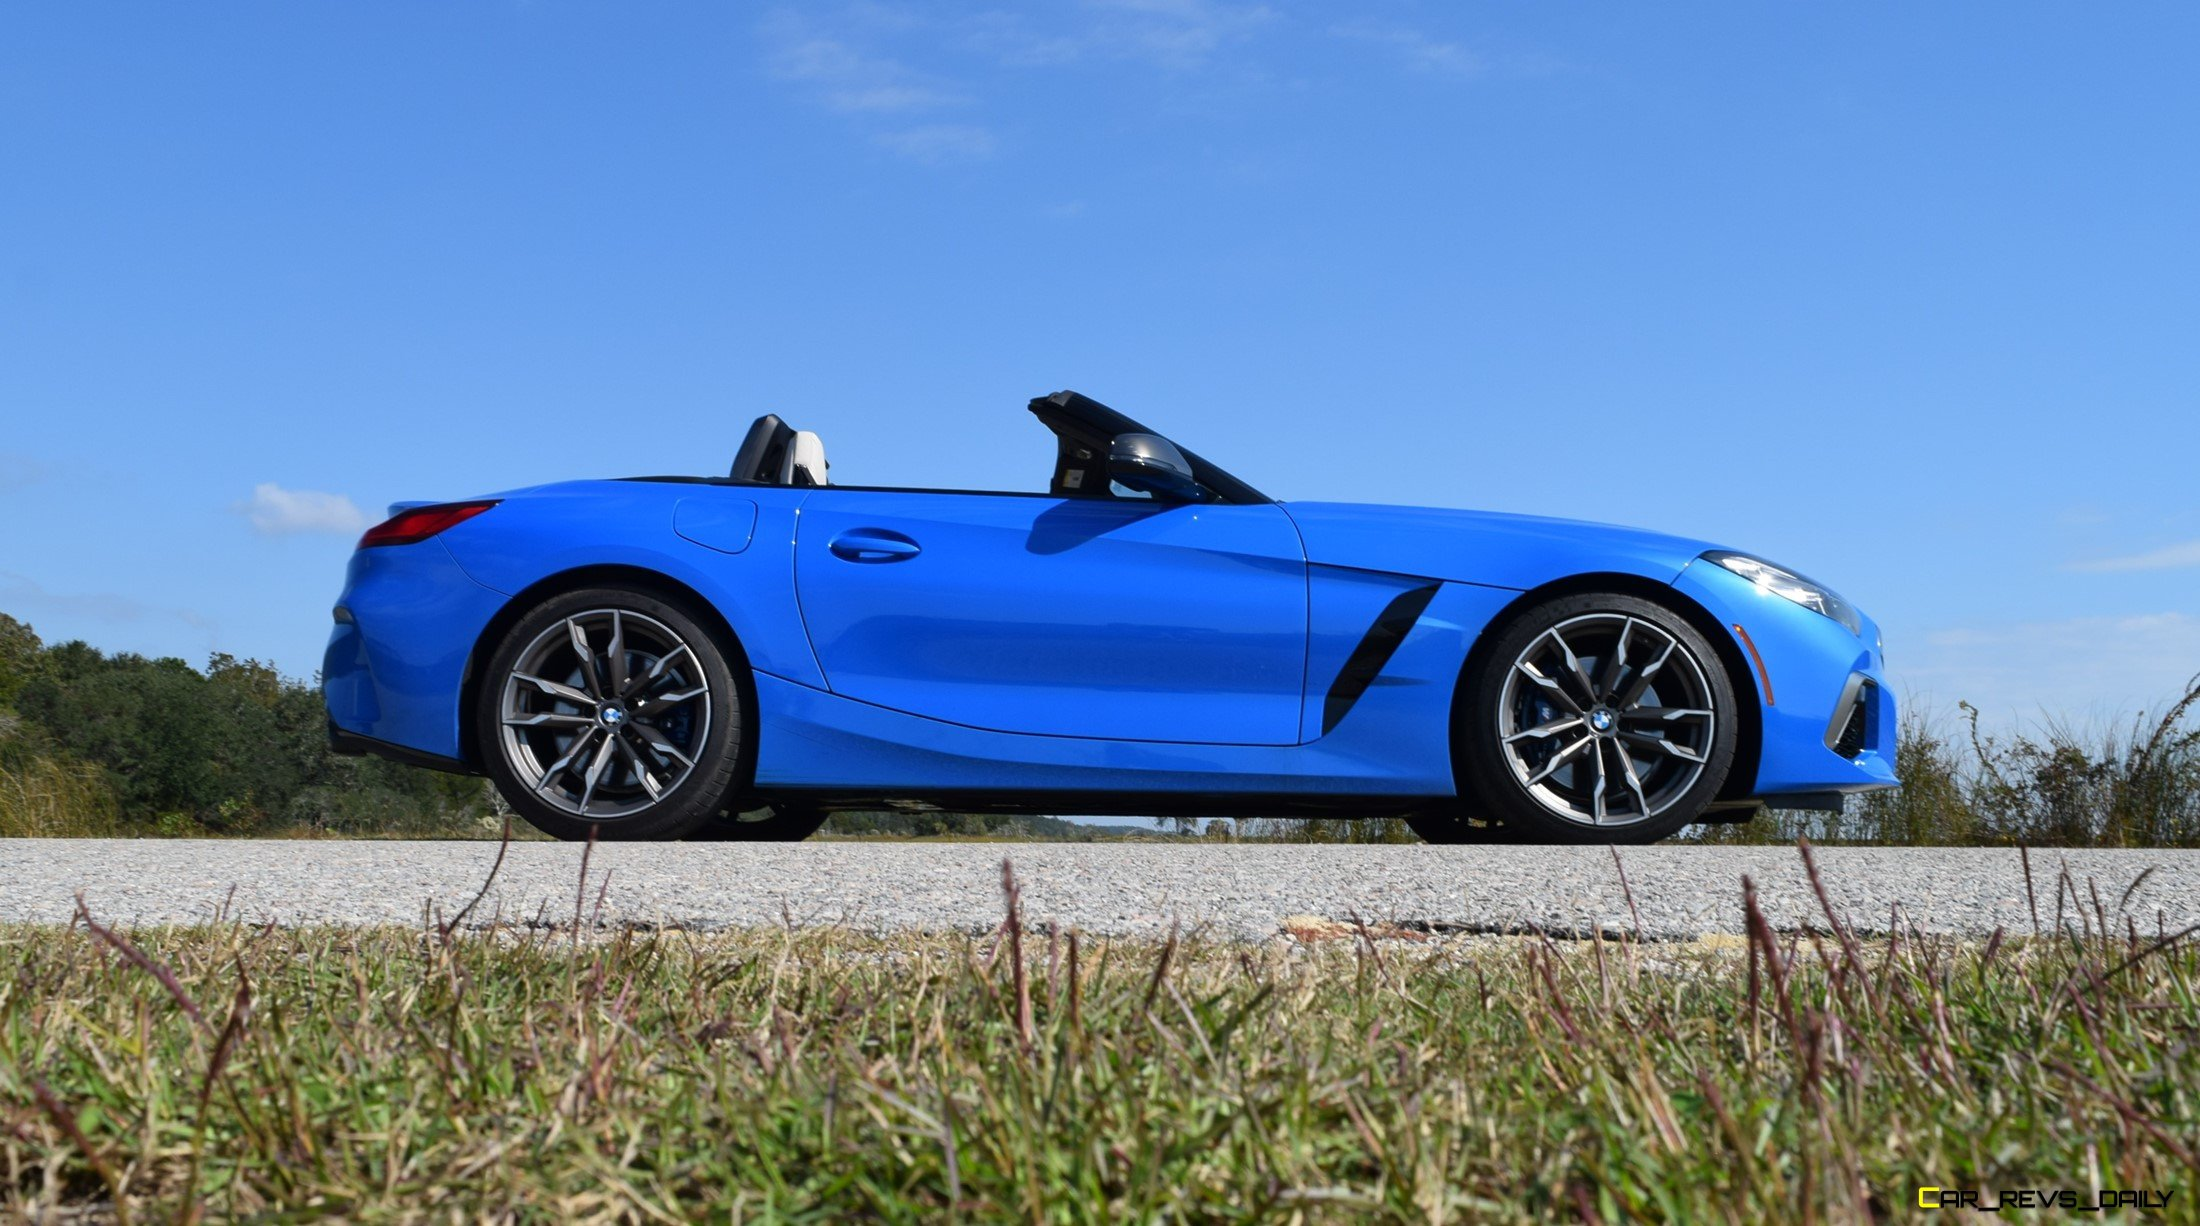 2019 Bmw Z4 M40i Road Test Review Drive Video Best Of 2019 Awards Car Revs Daily Com